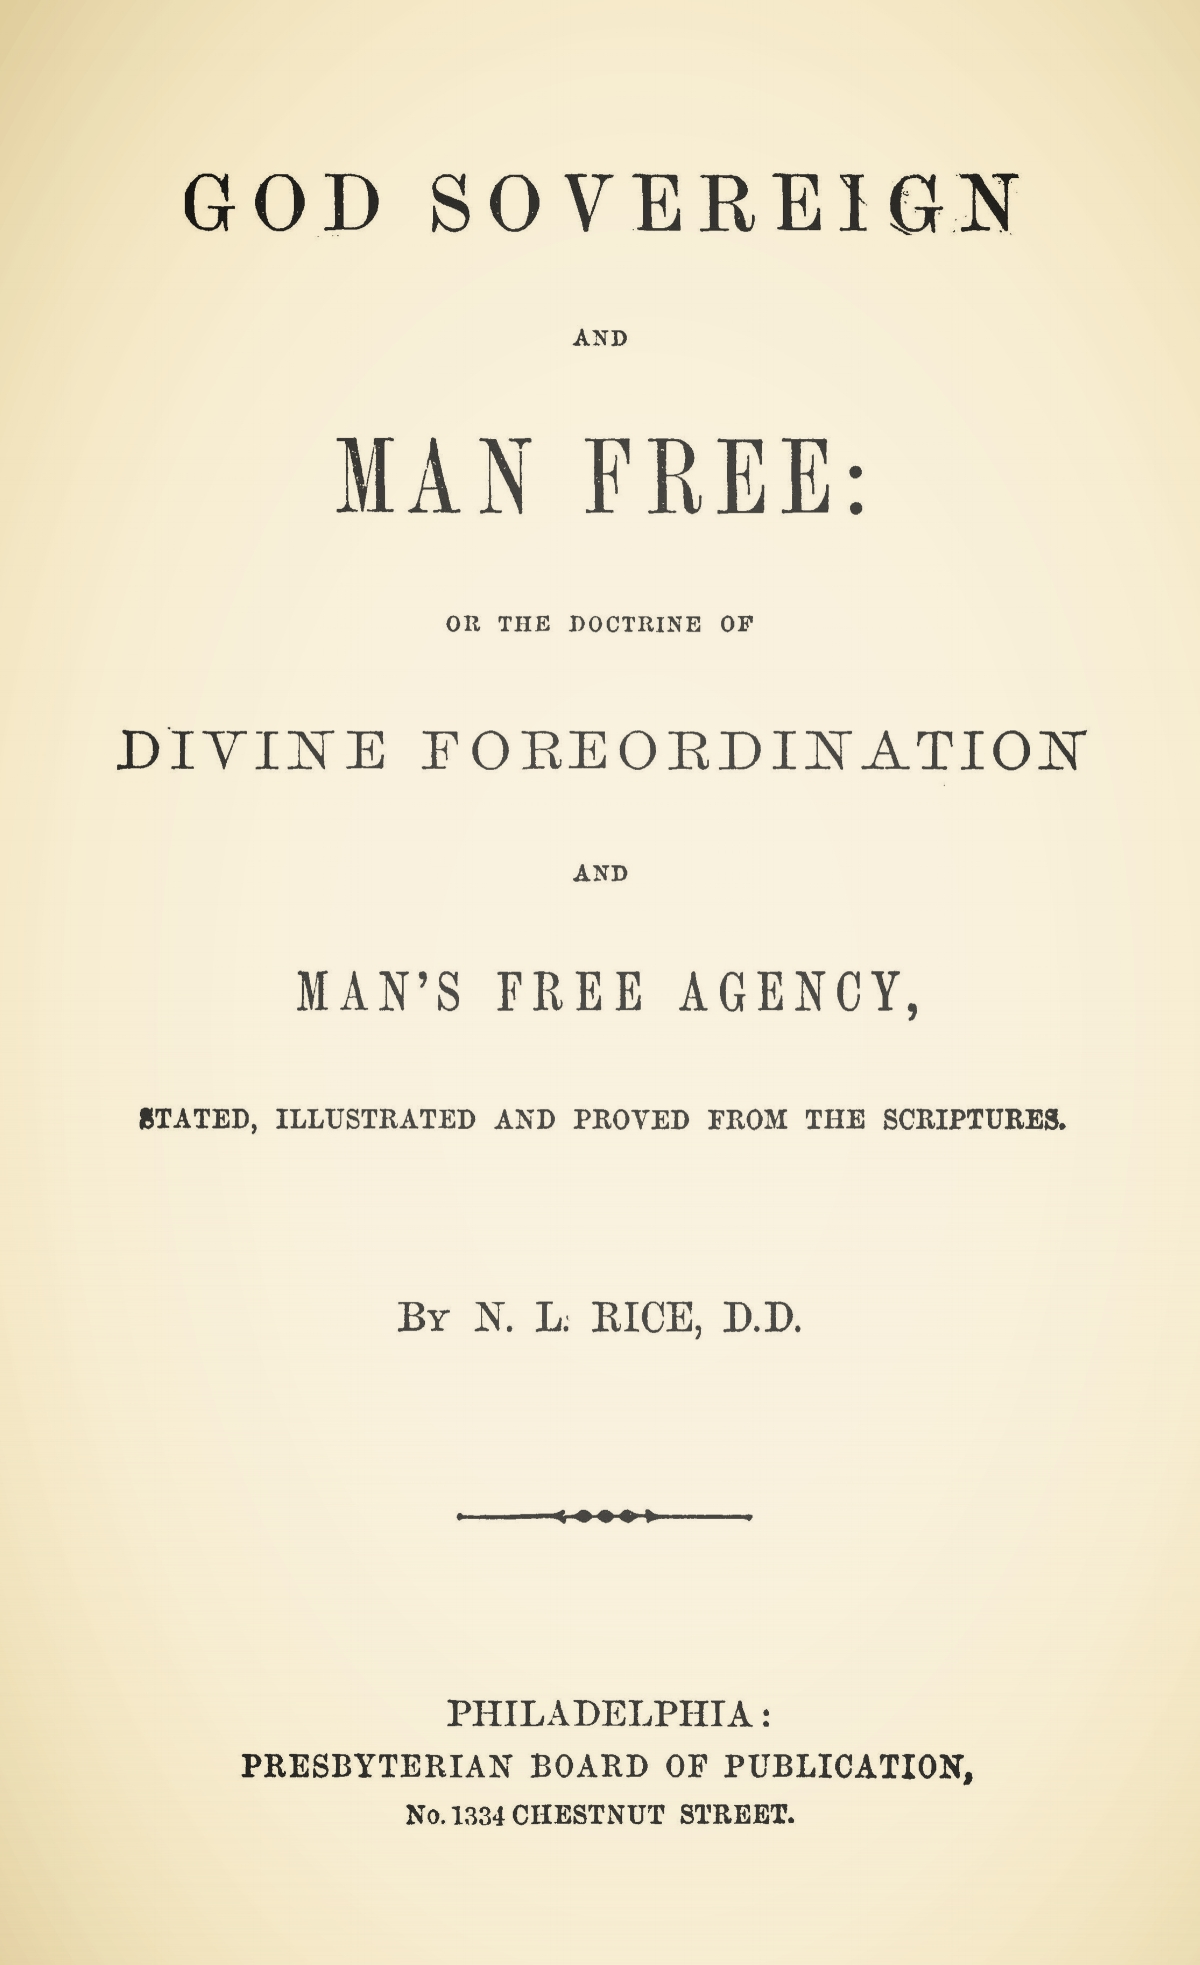 Rice, Nathan Lewis, God Sovereign and Man Free Title Page.jpg